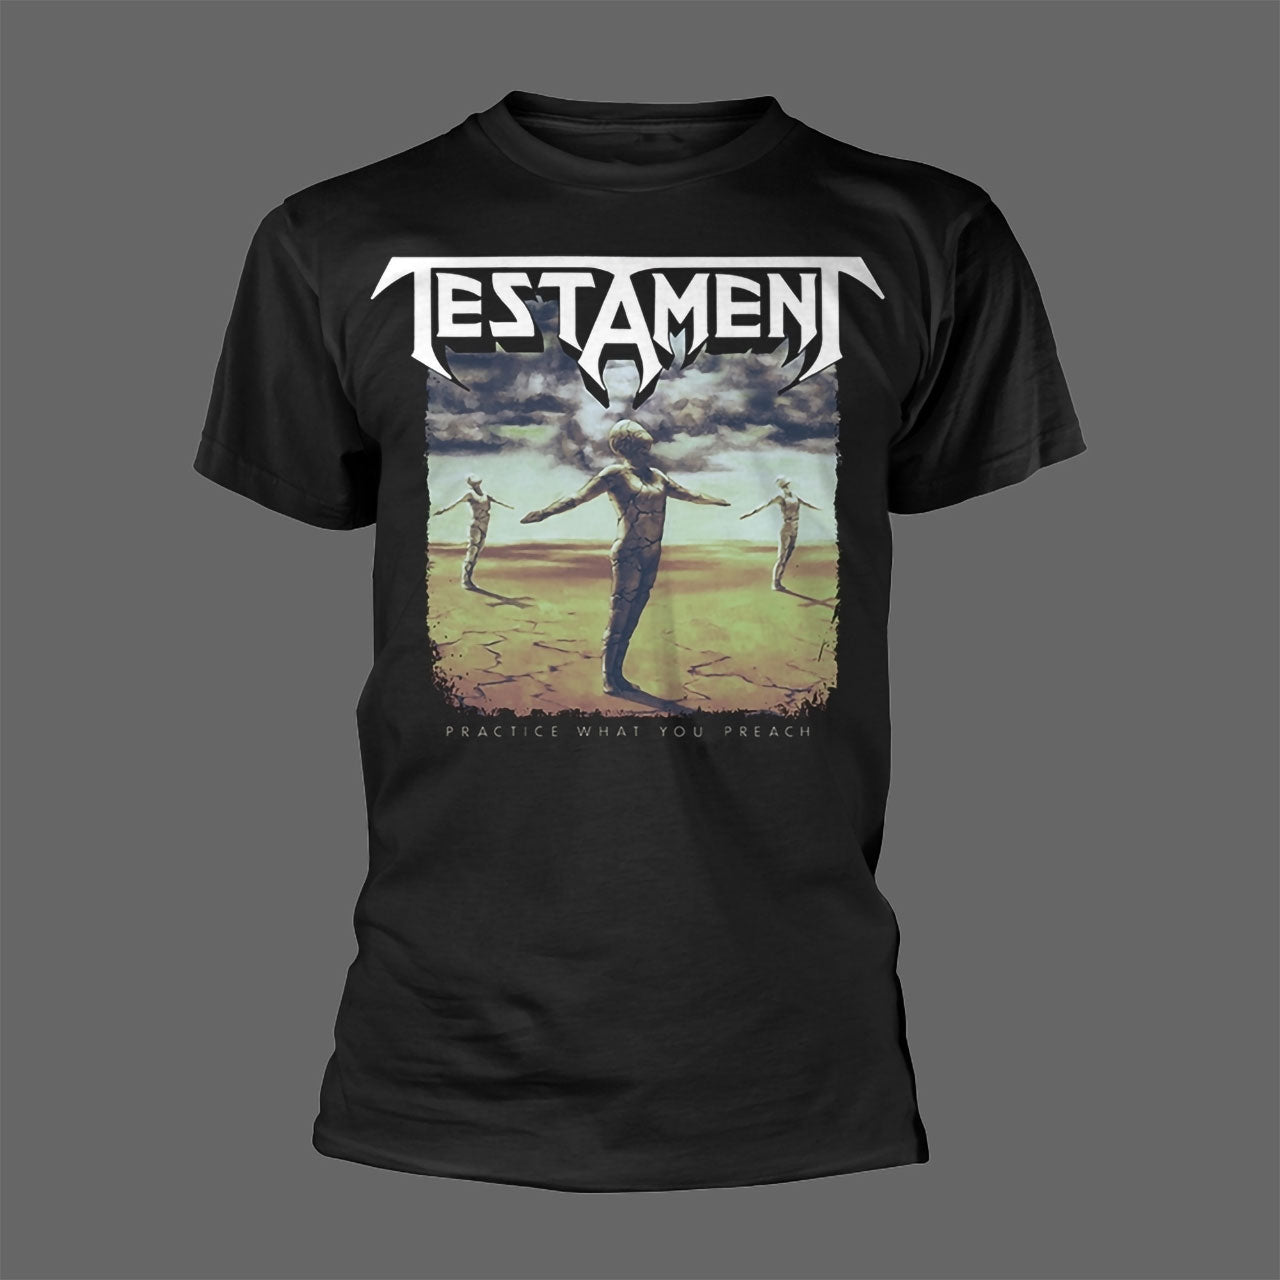 Testament - Practice What You Preach (T-Shirt)